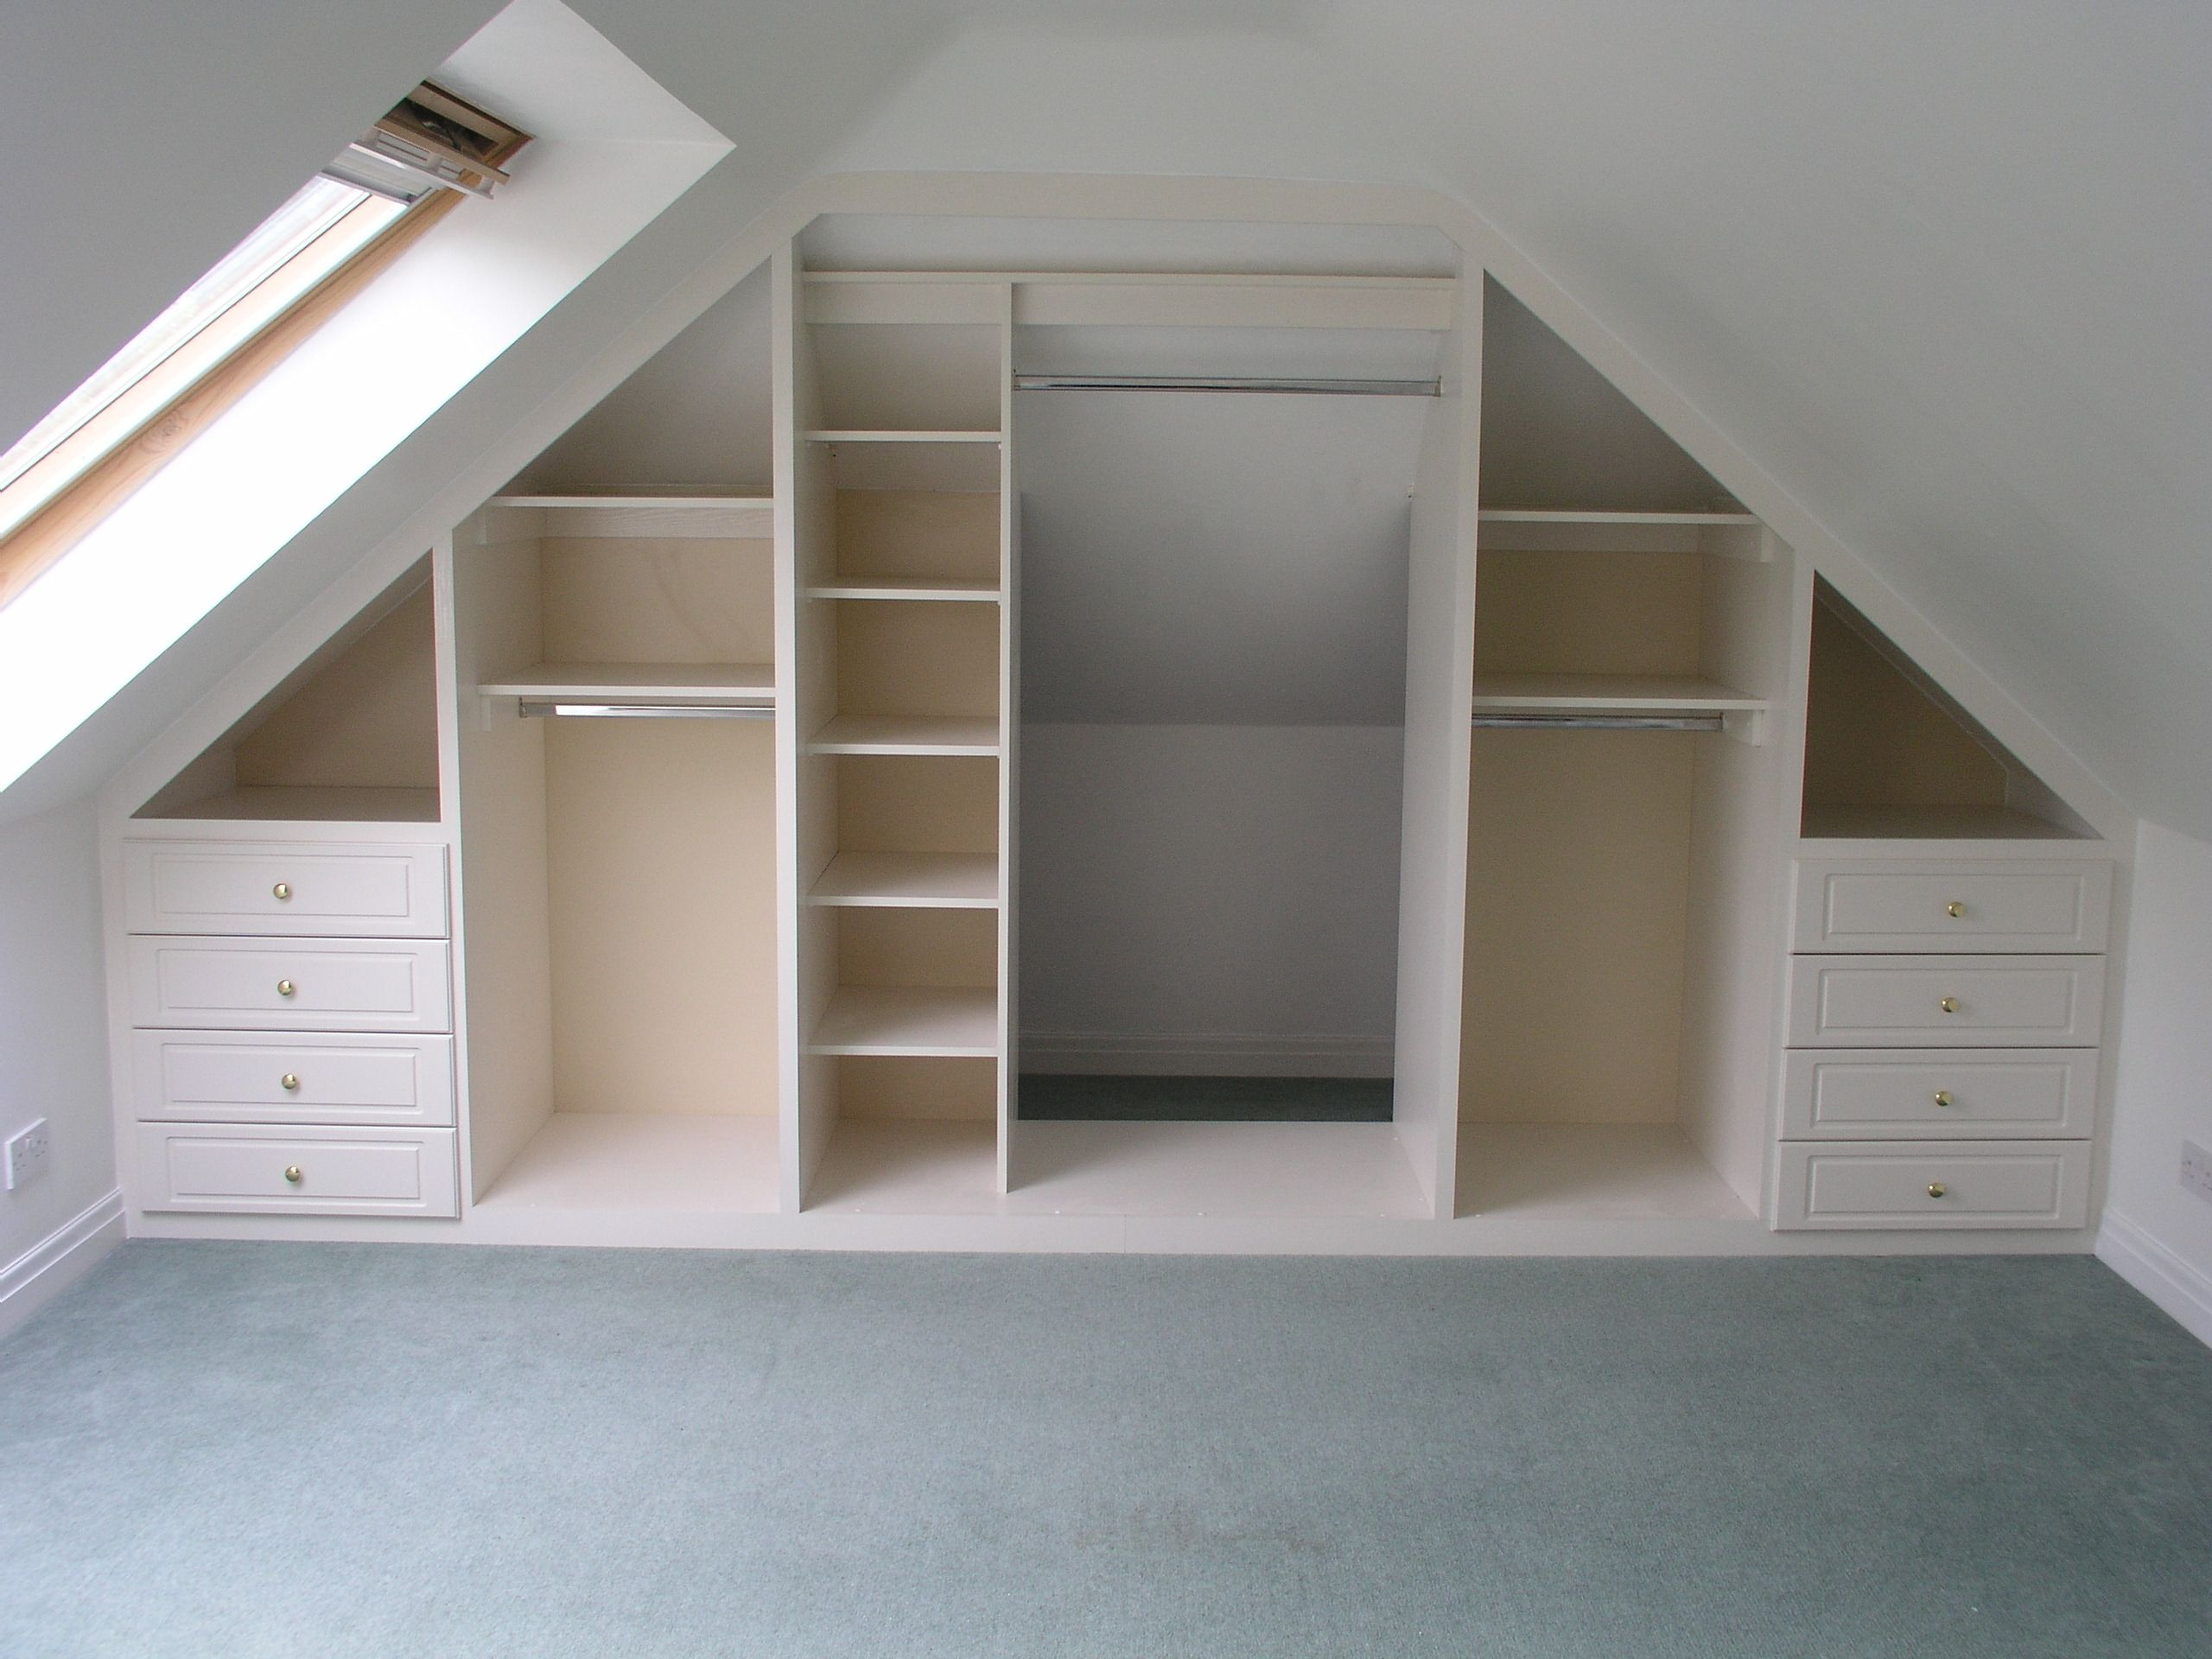 Angled Ceilings Don T Have To Restrict Storage Space Www